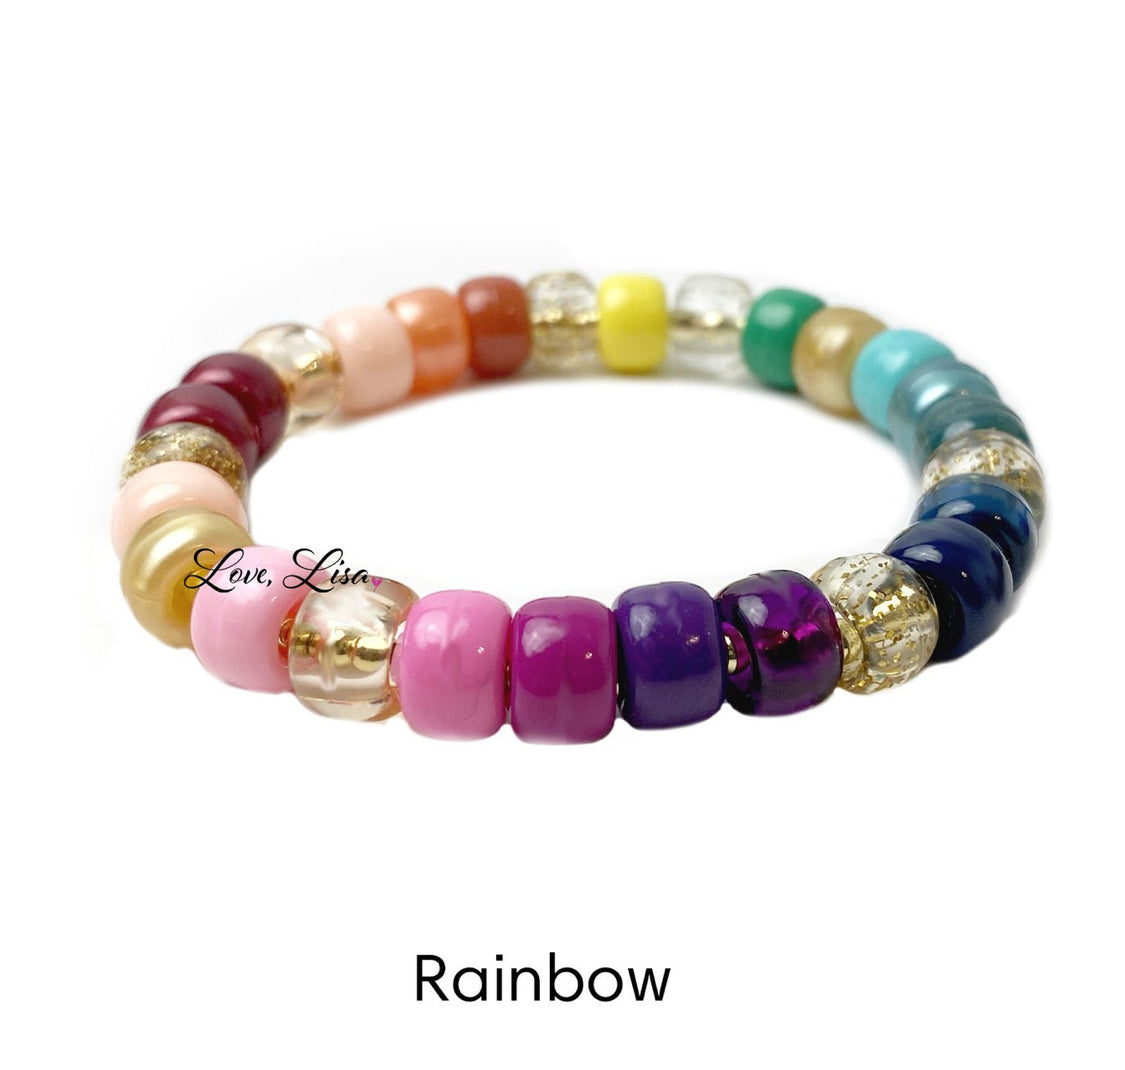 The Glam Beaded Multi Stretch Bracelet in Rainbow